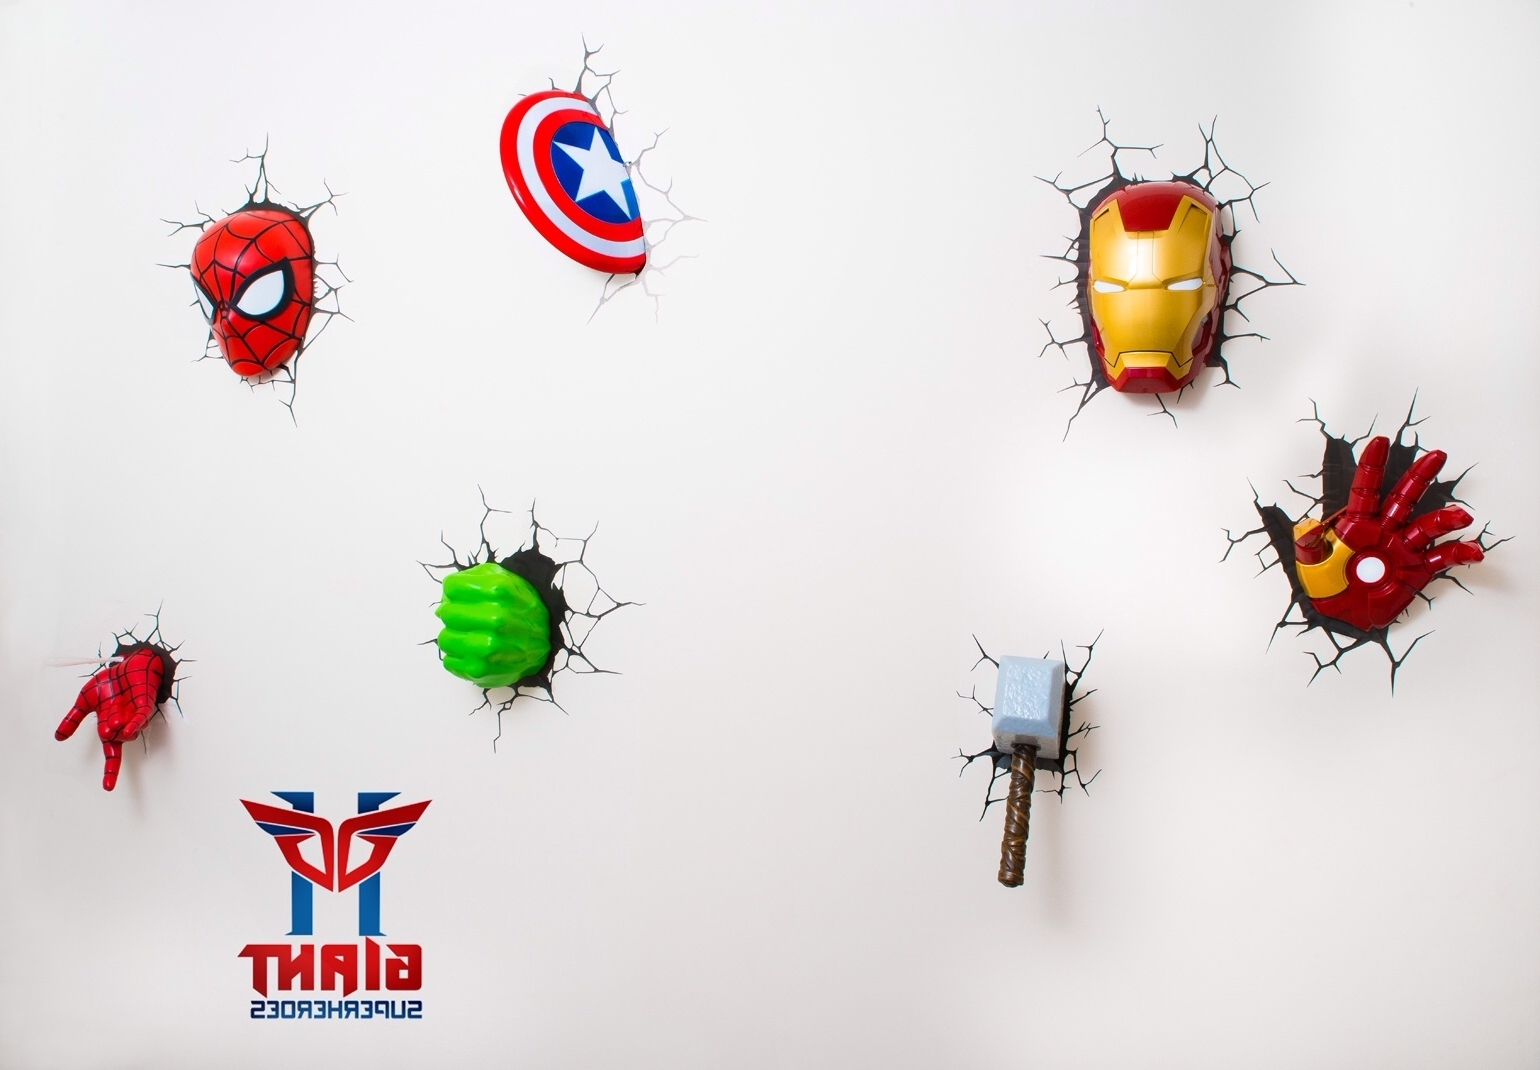 Favorite The Avengers 3D Wall Art Nightlight Within Super Cool Avengers 3D Wall Deco Night Lights For Sale! (View 3 of 15)